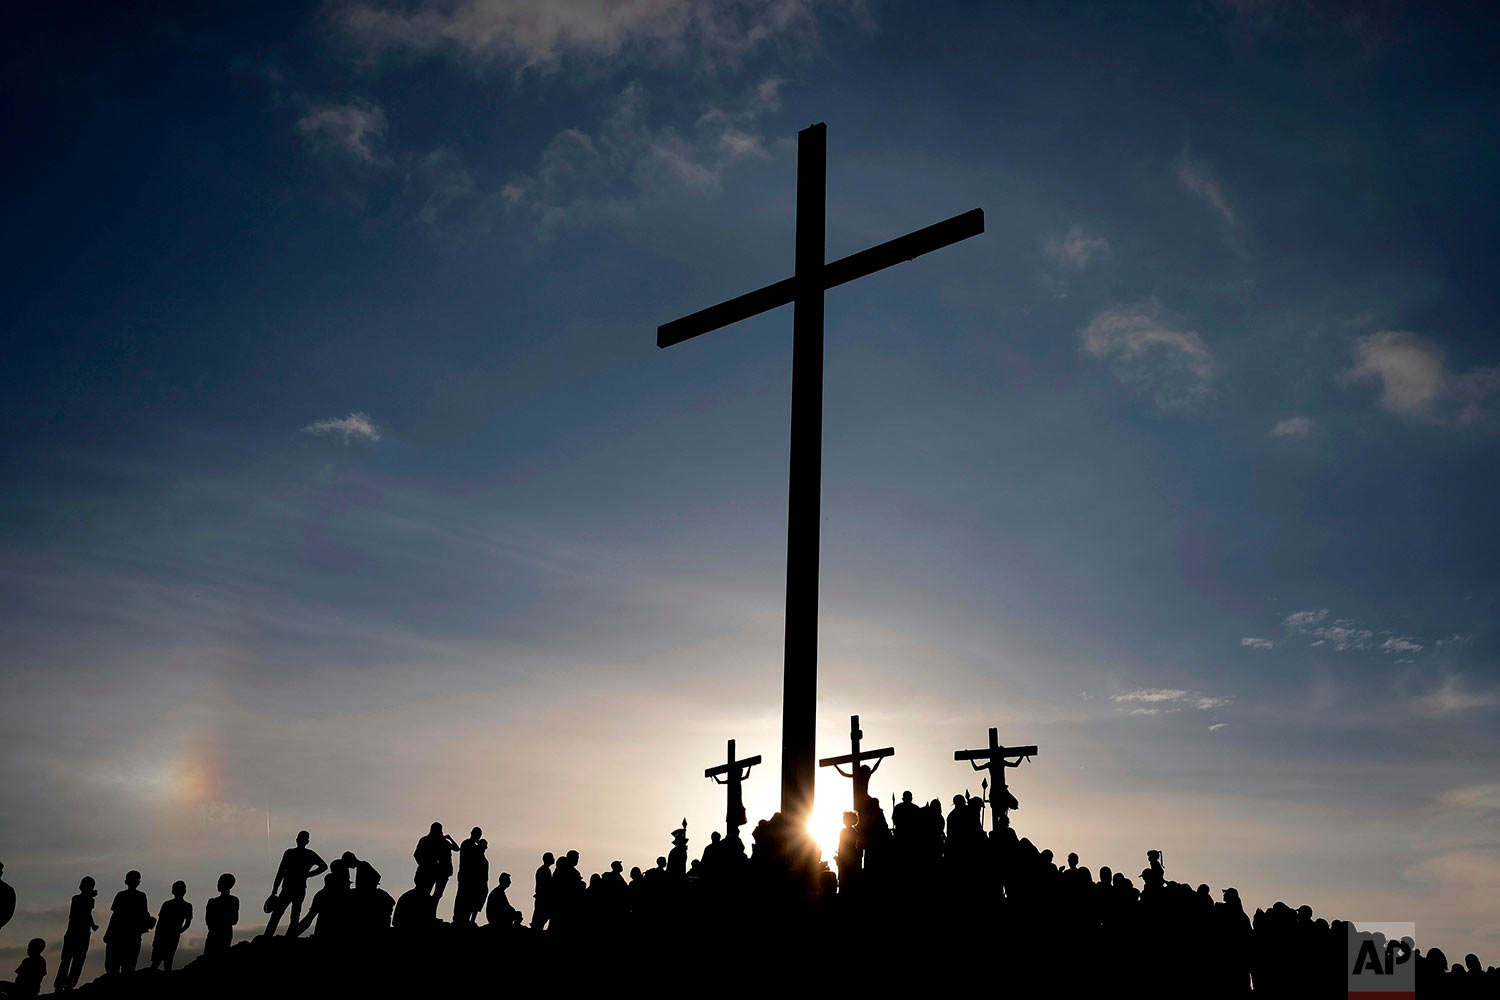 Flanked by La Cruz de El Morro, penitents reenact the crucifixion of Jesus Christ, marking Good Friday in the Petare shantytown of Caracas, Venezuela, March 30, 2018. Holy Week commemorates the last week of the earthly life of Jesus Christ culminating in his crucifixion on Good Friday and his resurrection on Easter Sunday. (AP Photo/Fernando Llano)